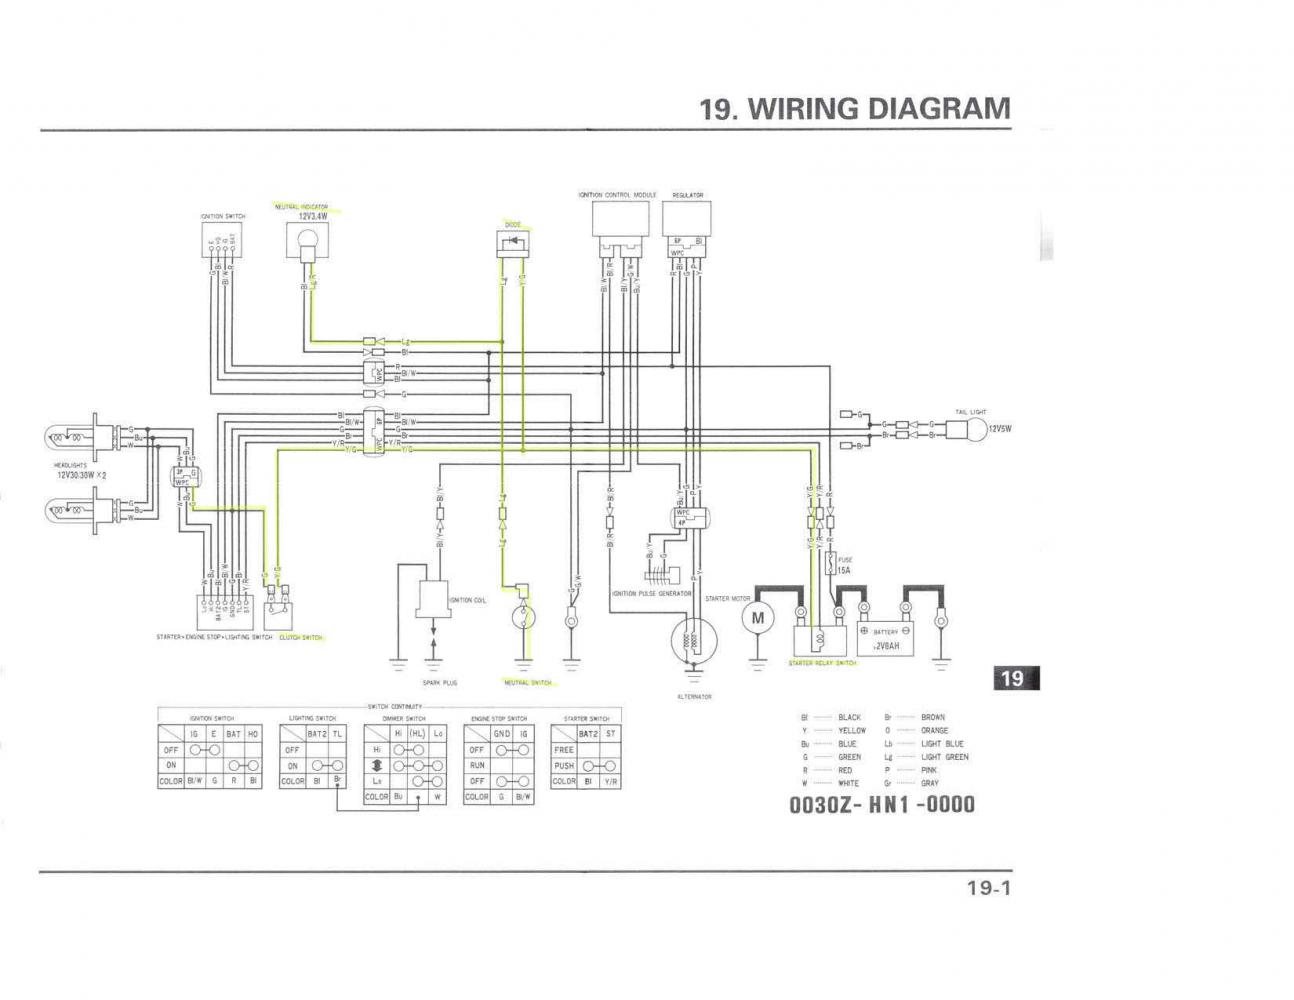 hight resolution of 400ex wiring issues page 2